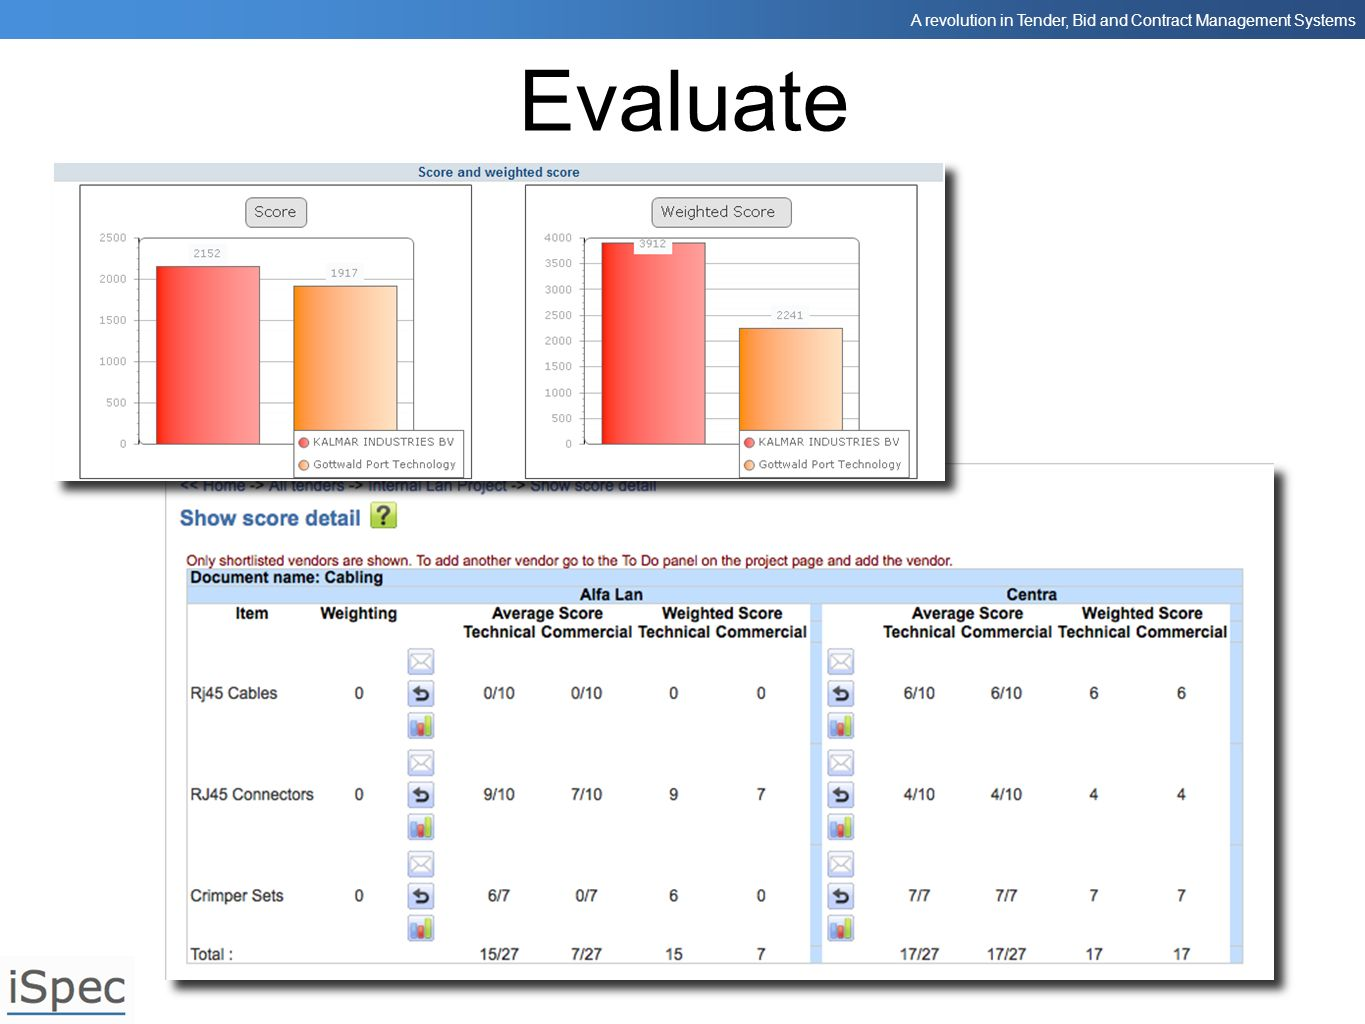 Evaluate As we continue scoring the vendors' responses, iSpec continually updates the evaluation reports.